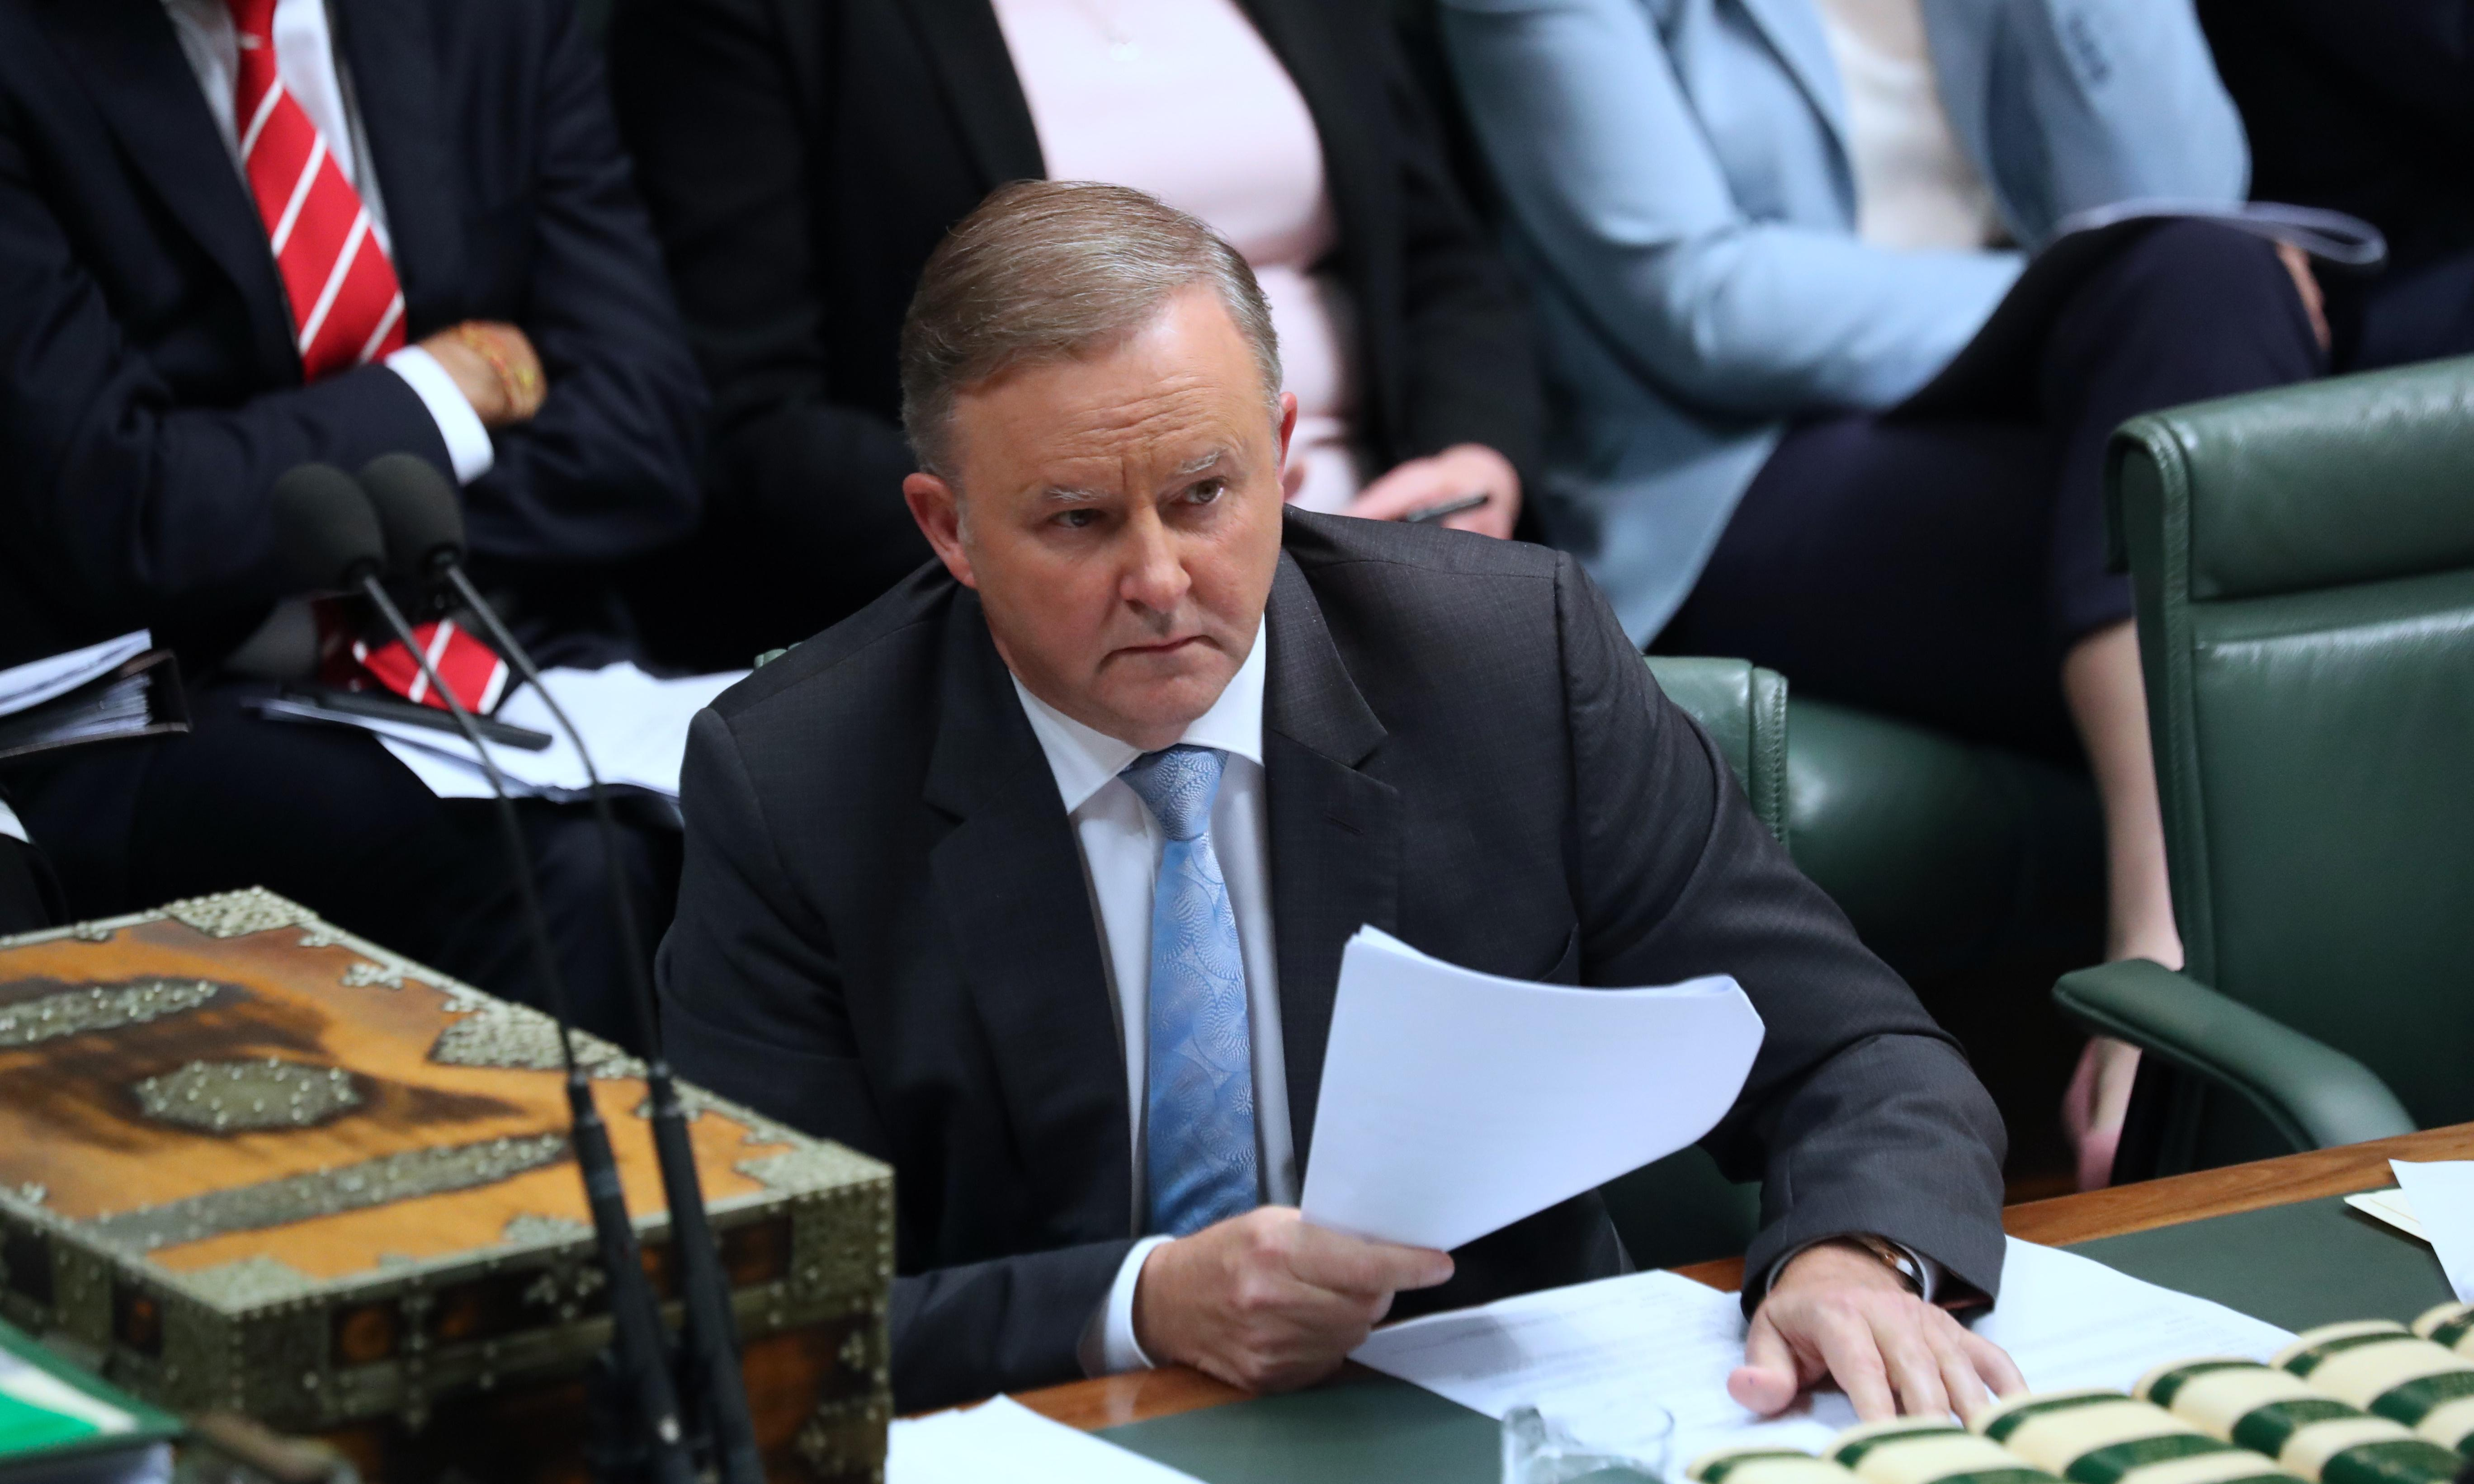 Union anger at Labor for siding with Coalition on new free trade deals